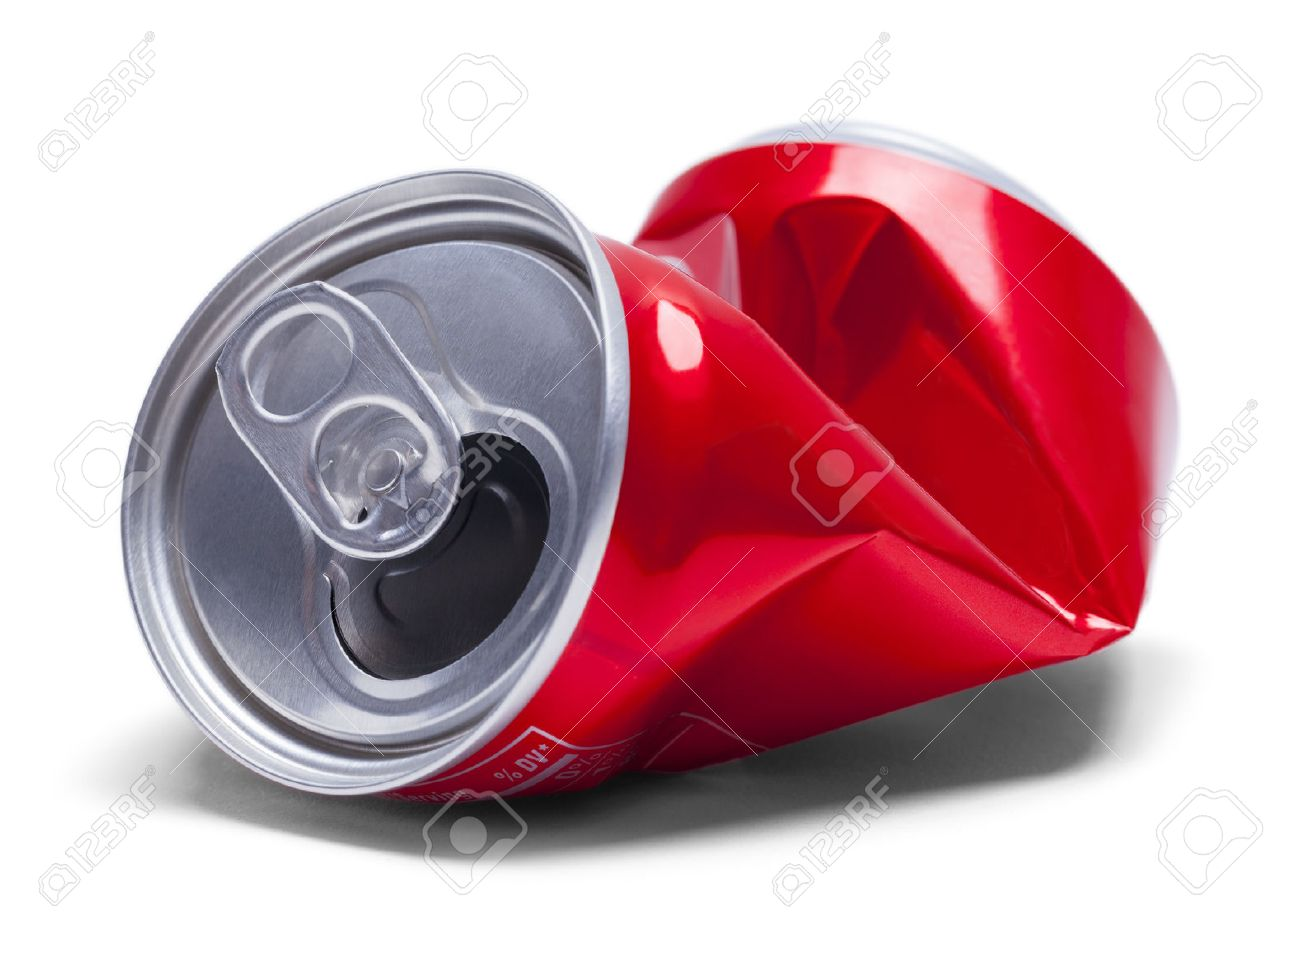 Empty Smashed Soda Pop Can Isolated on White Background. - 59180510